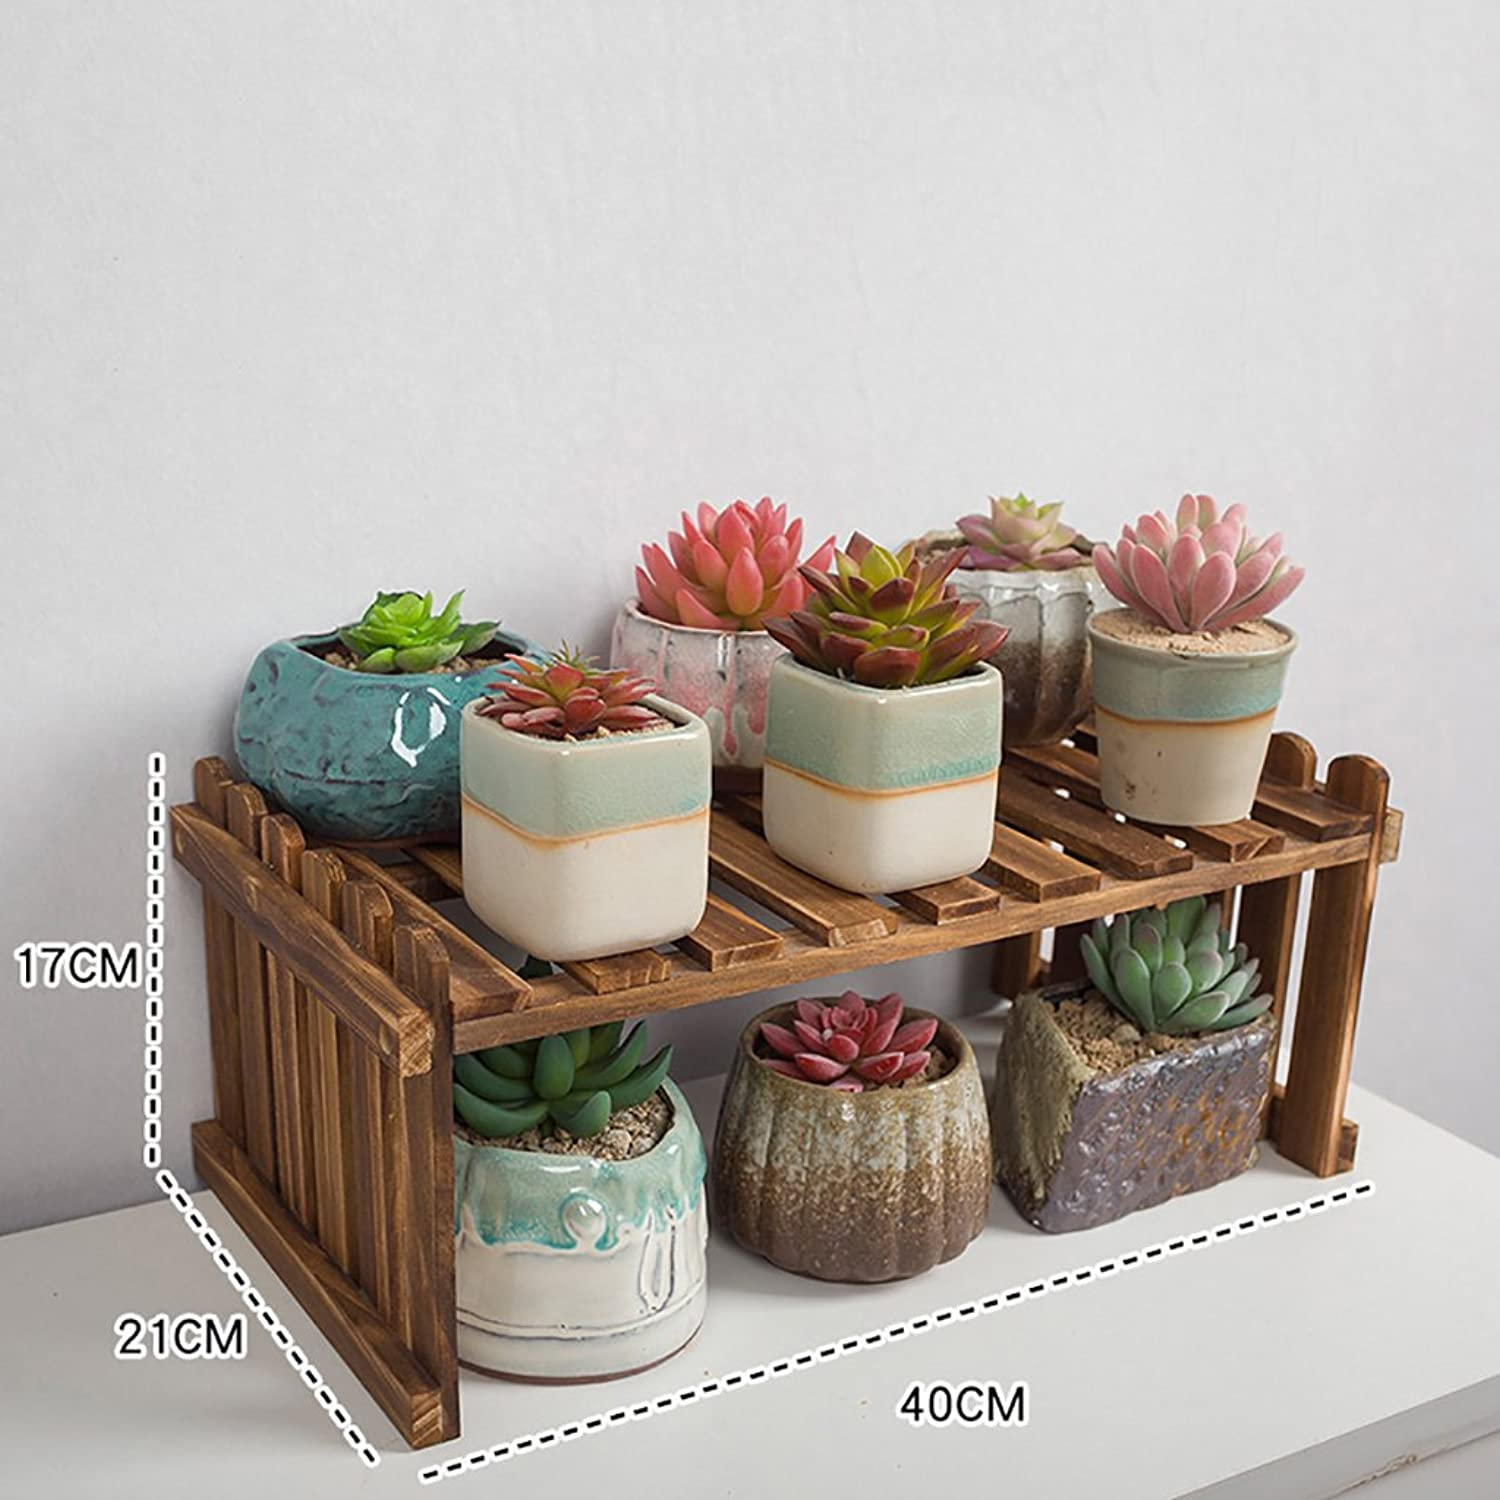 NYDZDM Flower Shelf Wooden, Multi-Layer Indoor White Desk Balcony Living Room Storage Pot Holder (Size   40×21×17cm)